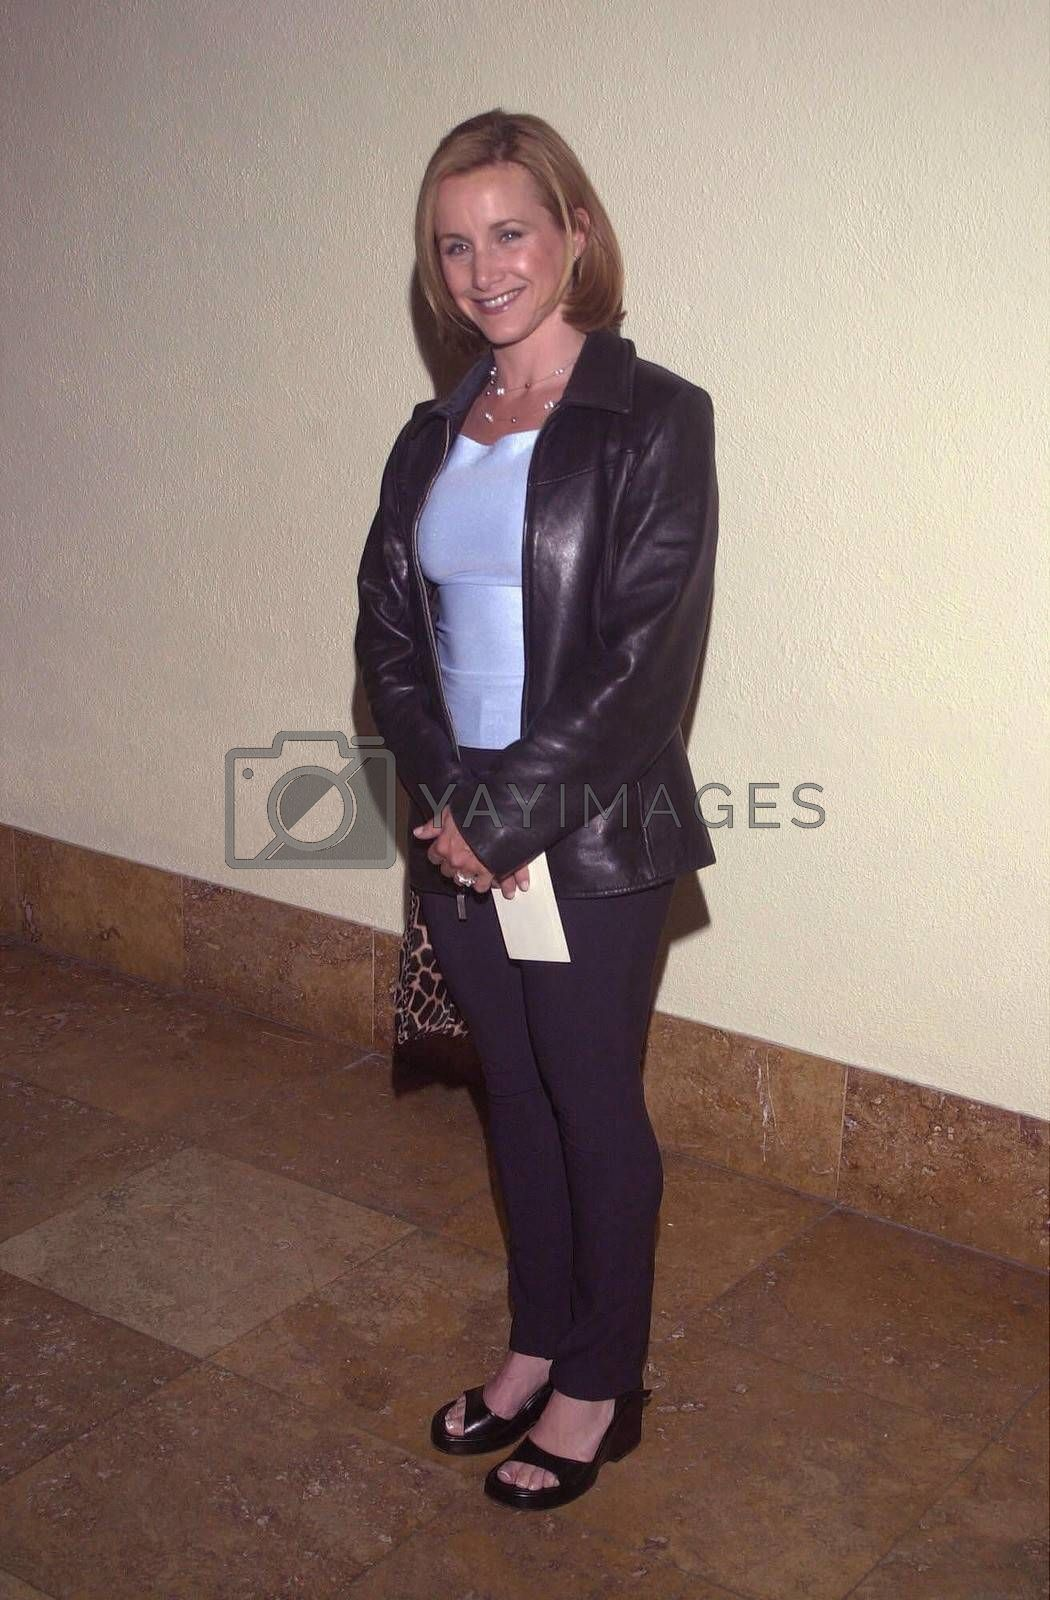 """Gabrielle Carteris at the """"Beverly Hills 90210"""" series wrap party in Hollywood, 04-04-00"""